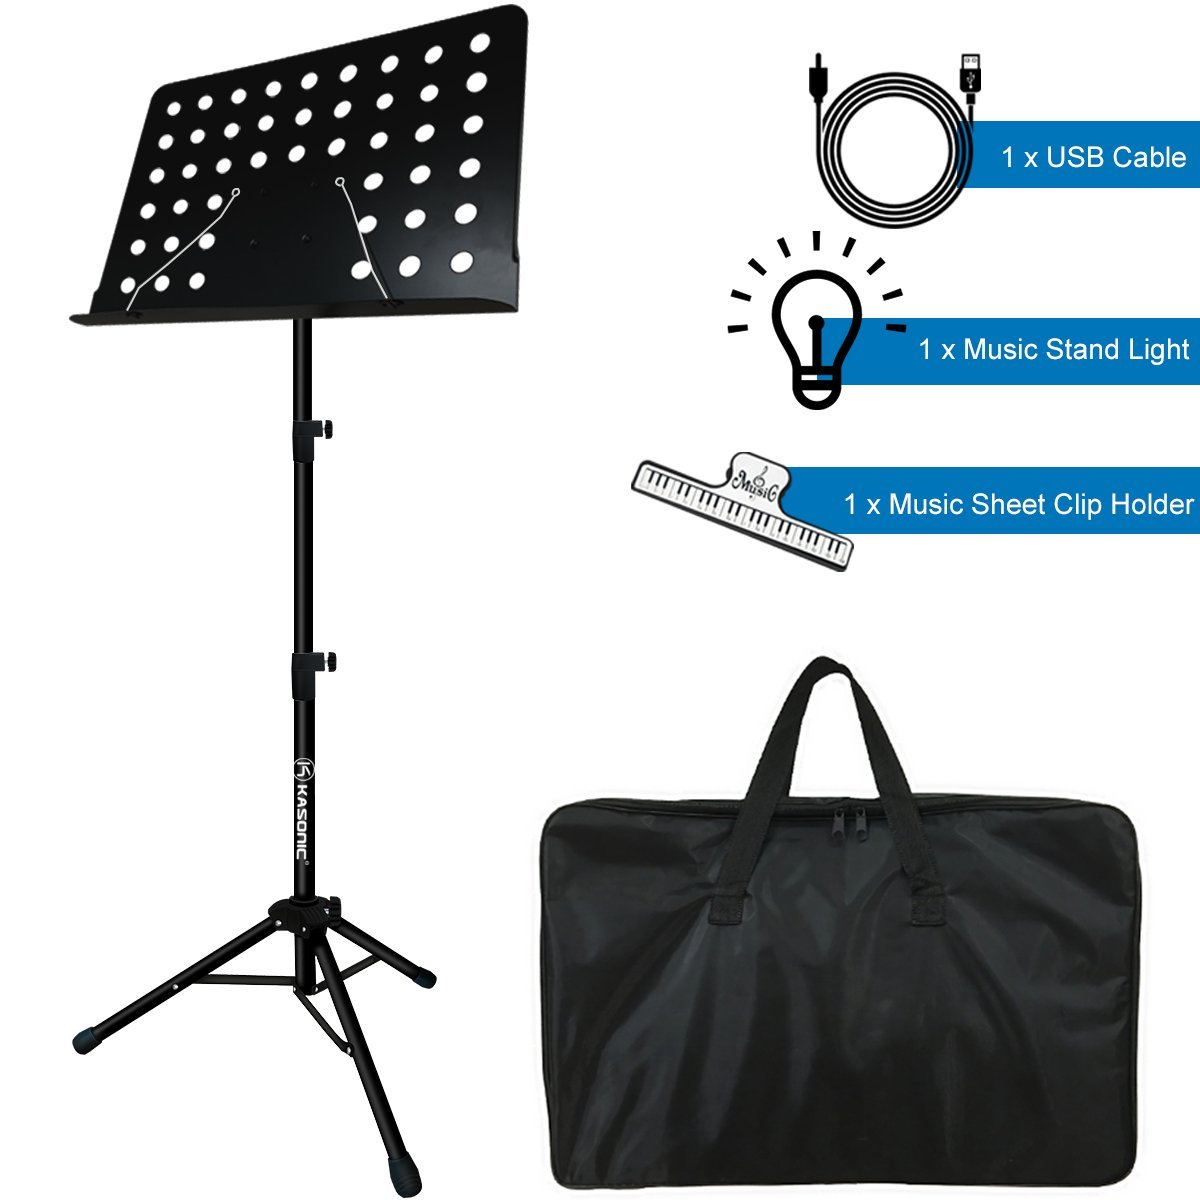 Costech Professional Collapsible Music Stand for Music Sheet, Instrument Books with LED light, Paper Holder and Carrying Bag Perfect for Instrumental Performance